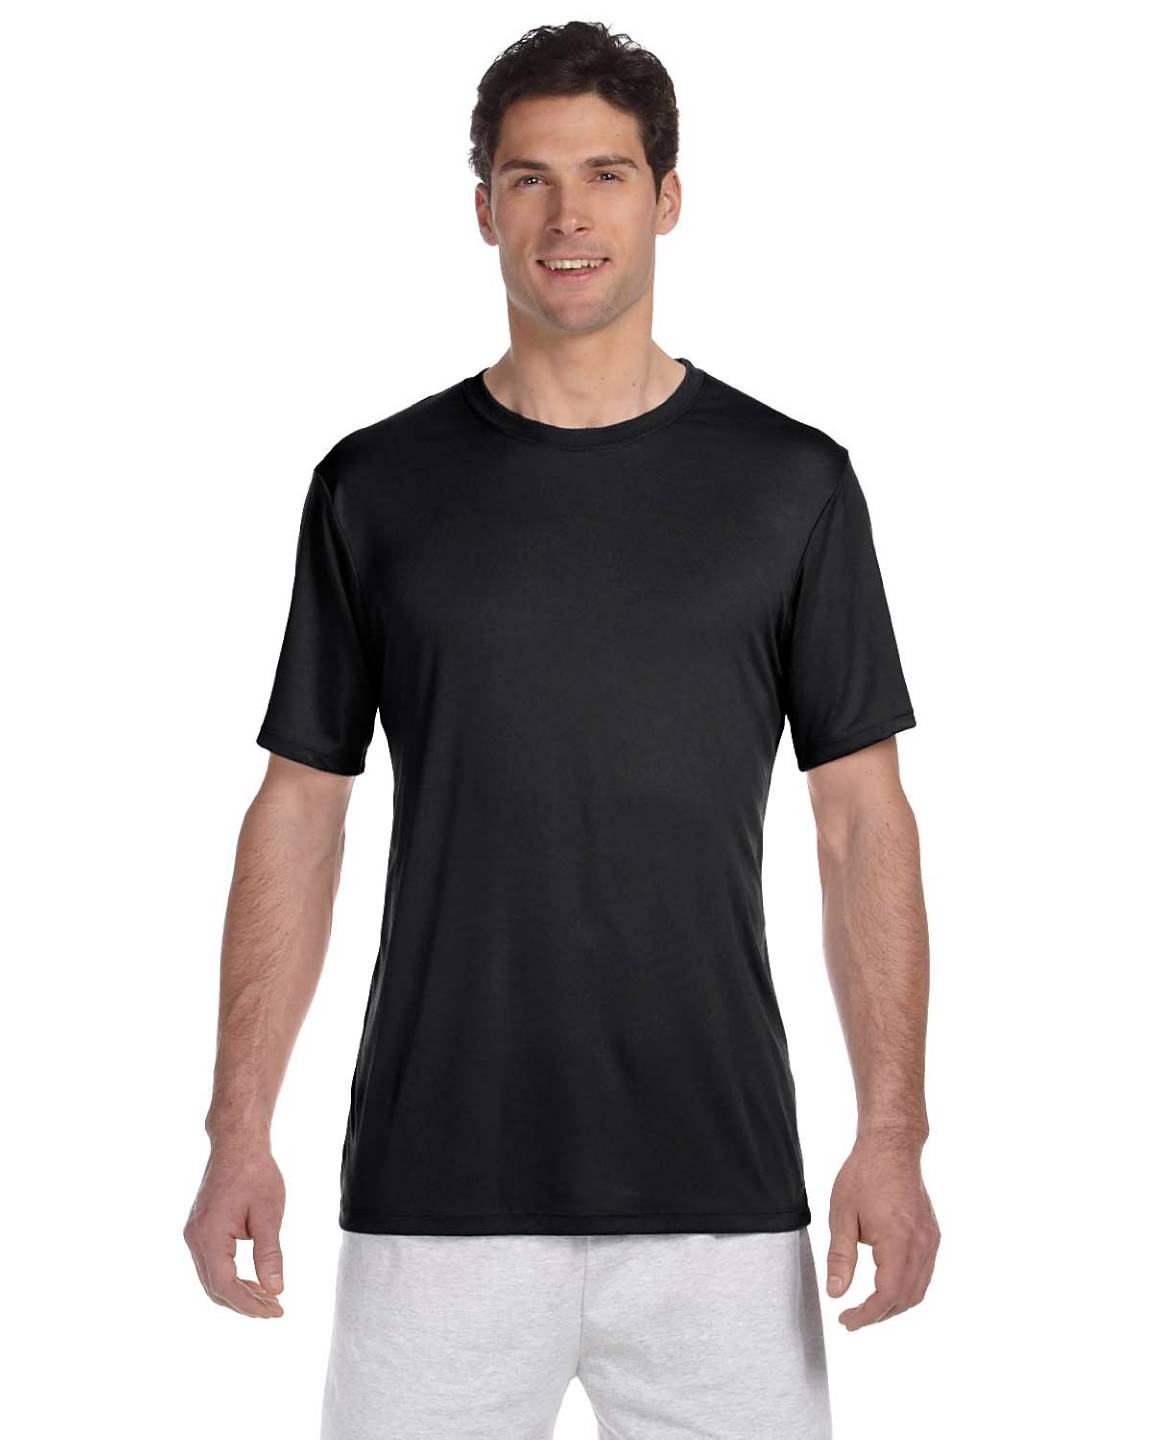 hanes men 39 s 4 oz short sleeves 100 polyester cool dri big size t shirt 4820 ebay. Black Bedroom Furniture Sets. Home Design Ideas